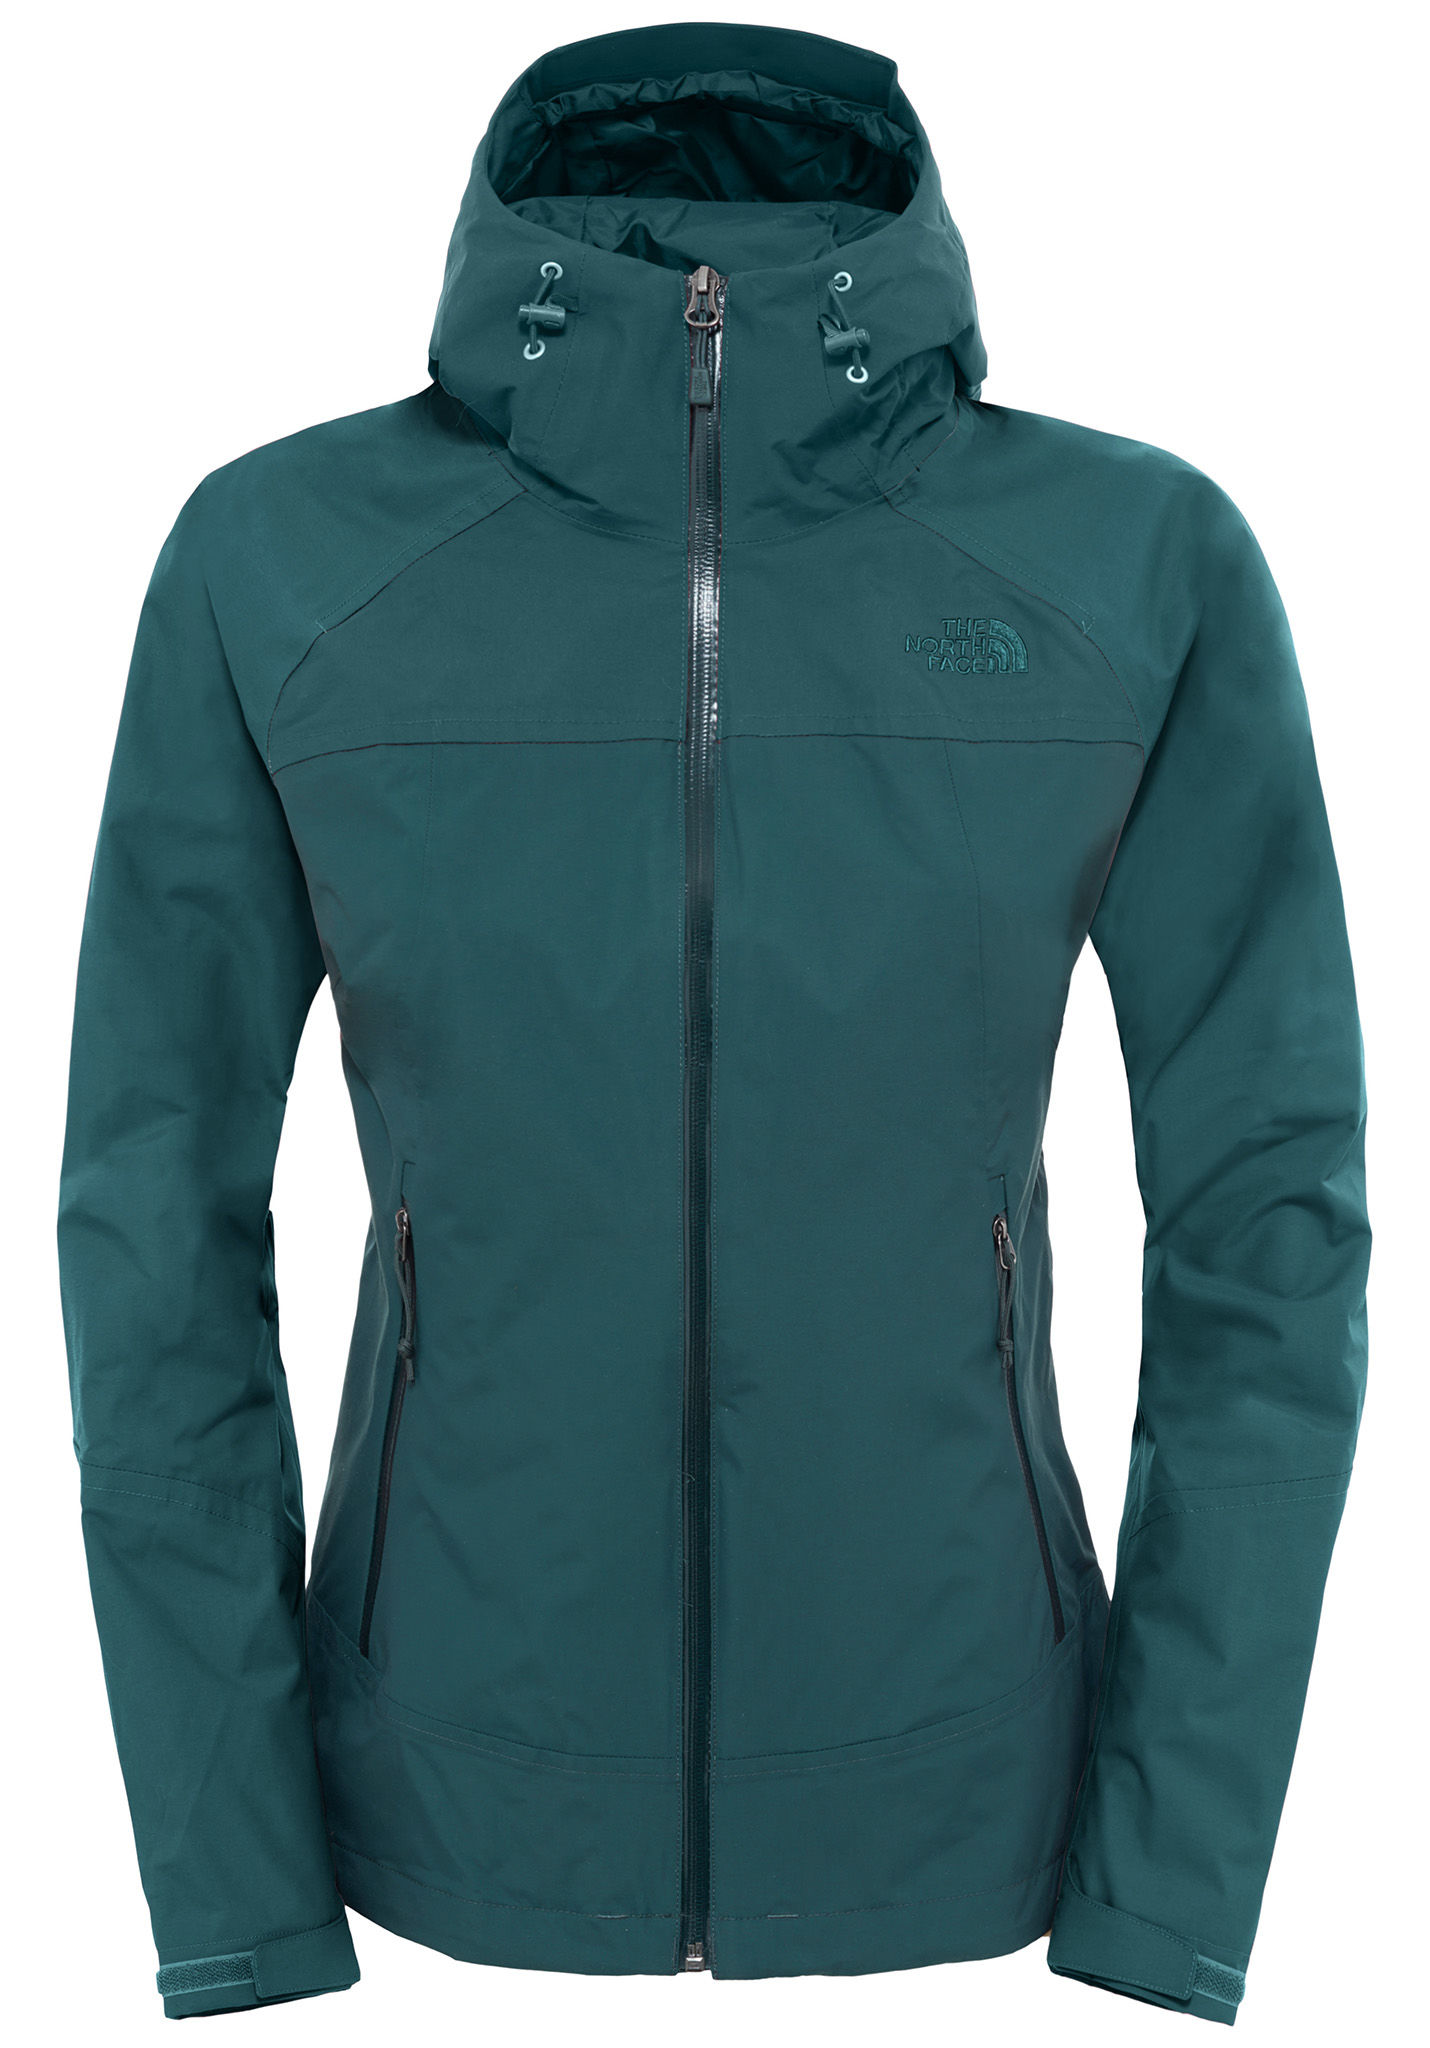 5d586f9f6cd4 ... THE NORTH FACE Stratos - Functional Jacket for Women - Green - Planet  Sports ...